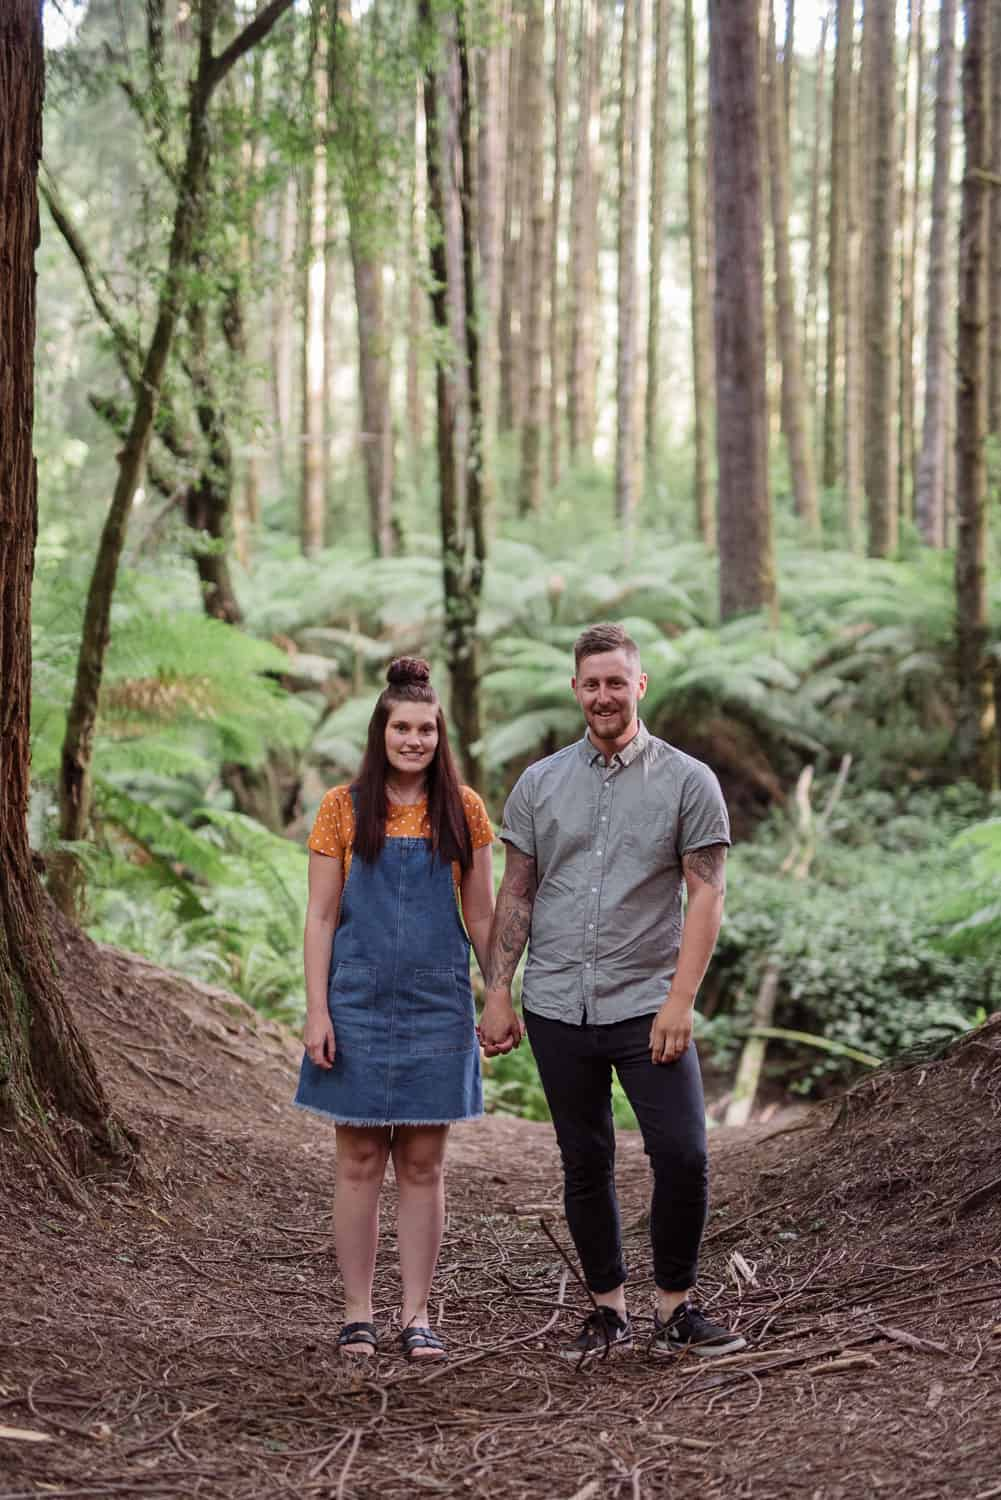 A redwood plantation portrait